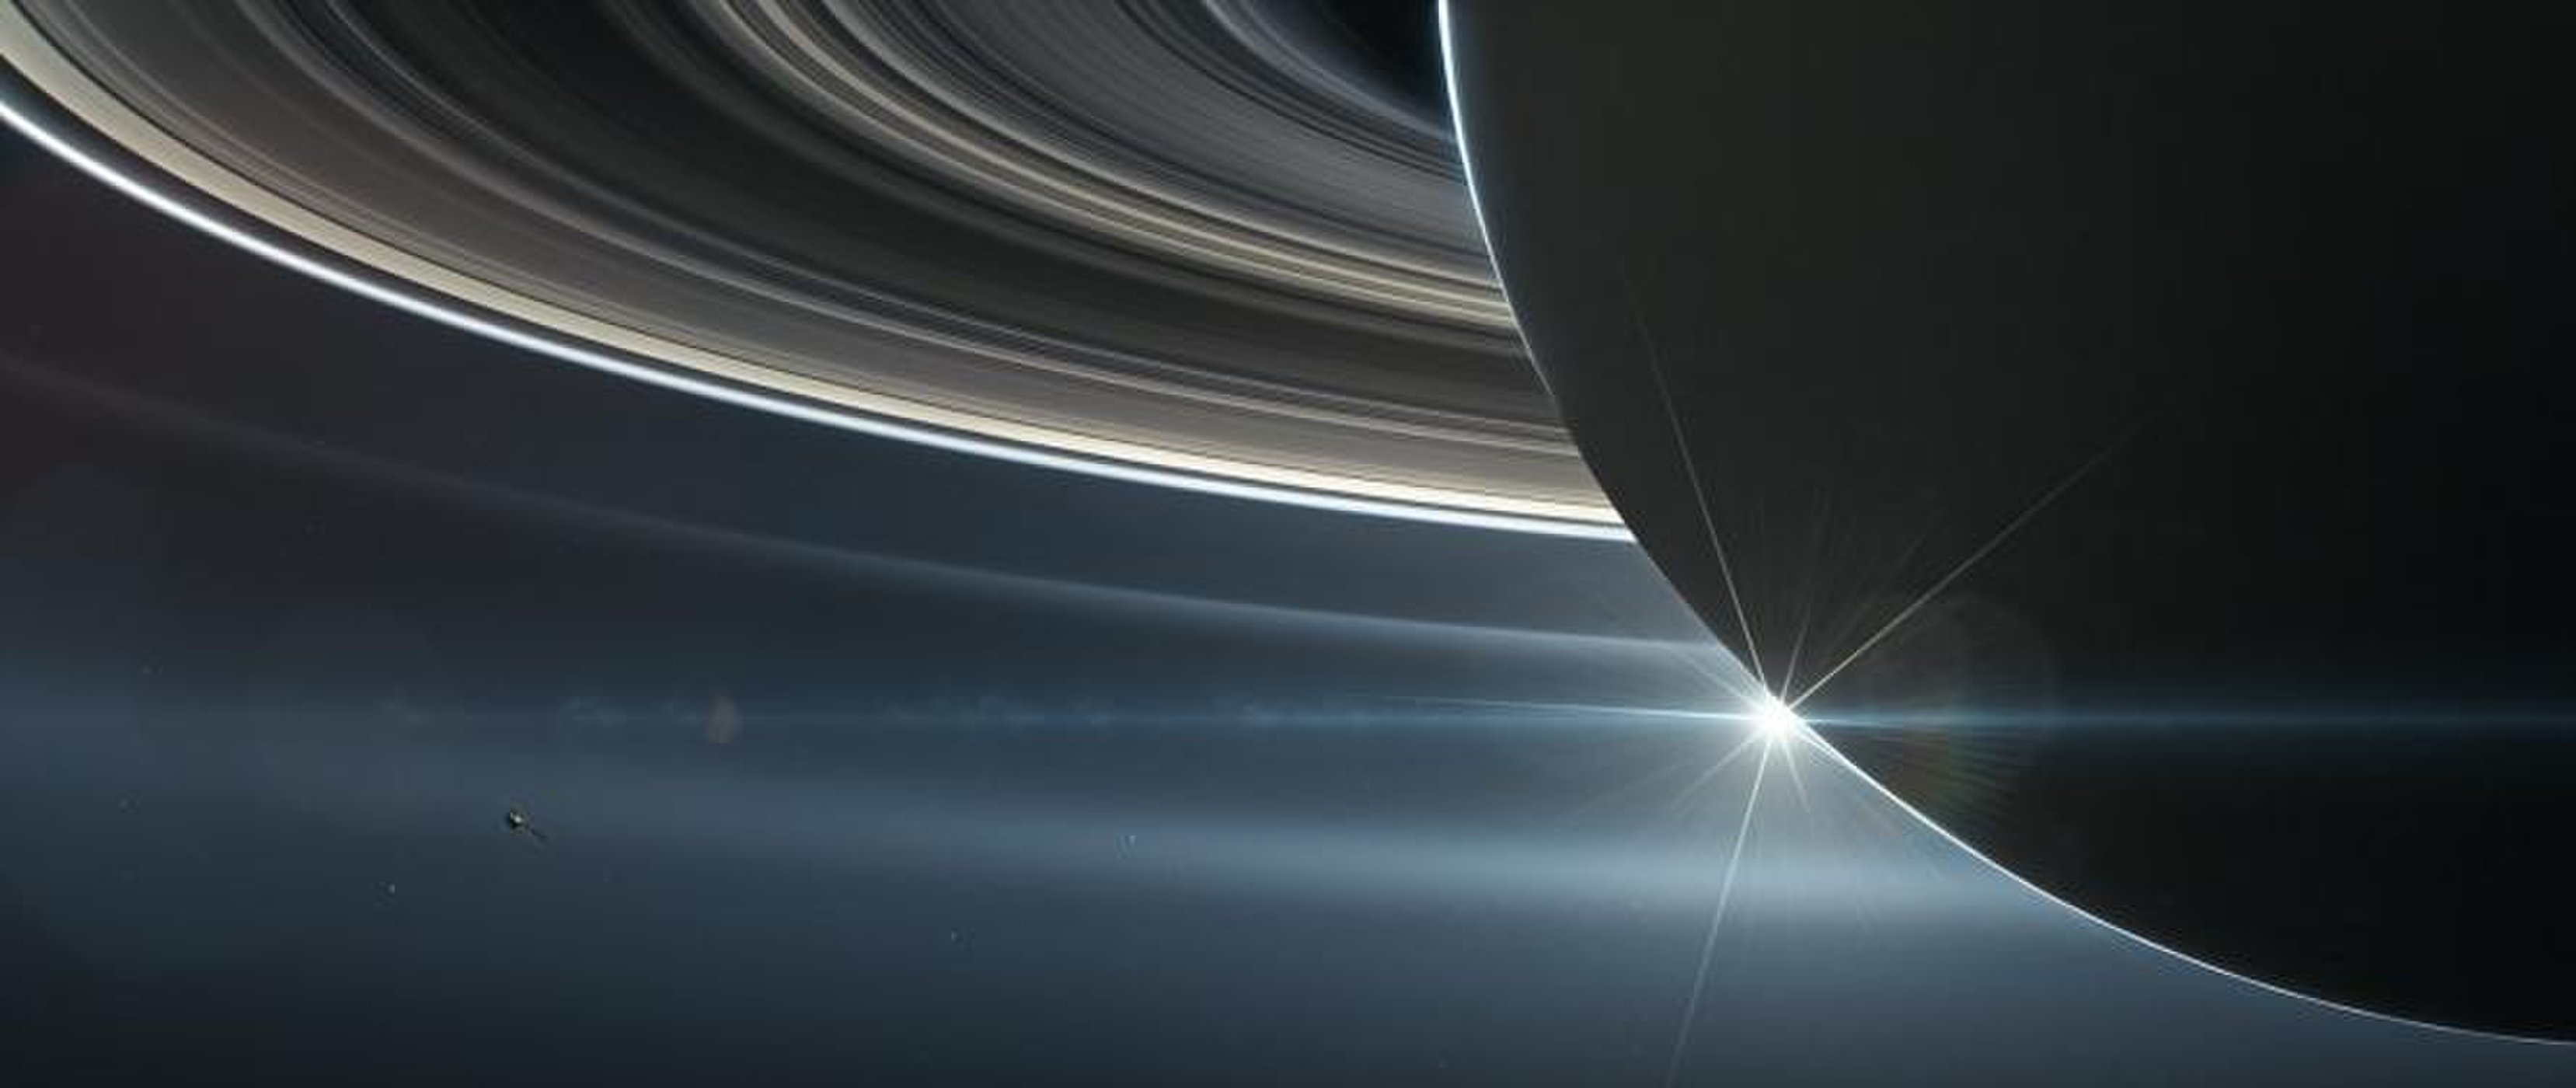 An artist's depiction of the Cassini spacecraft orbiting Saturn near the end of its mission.